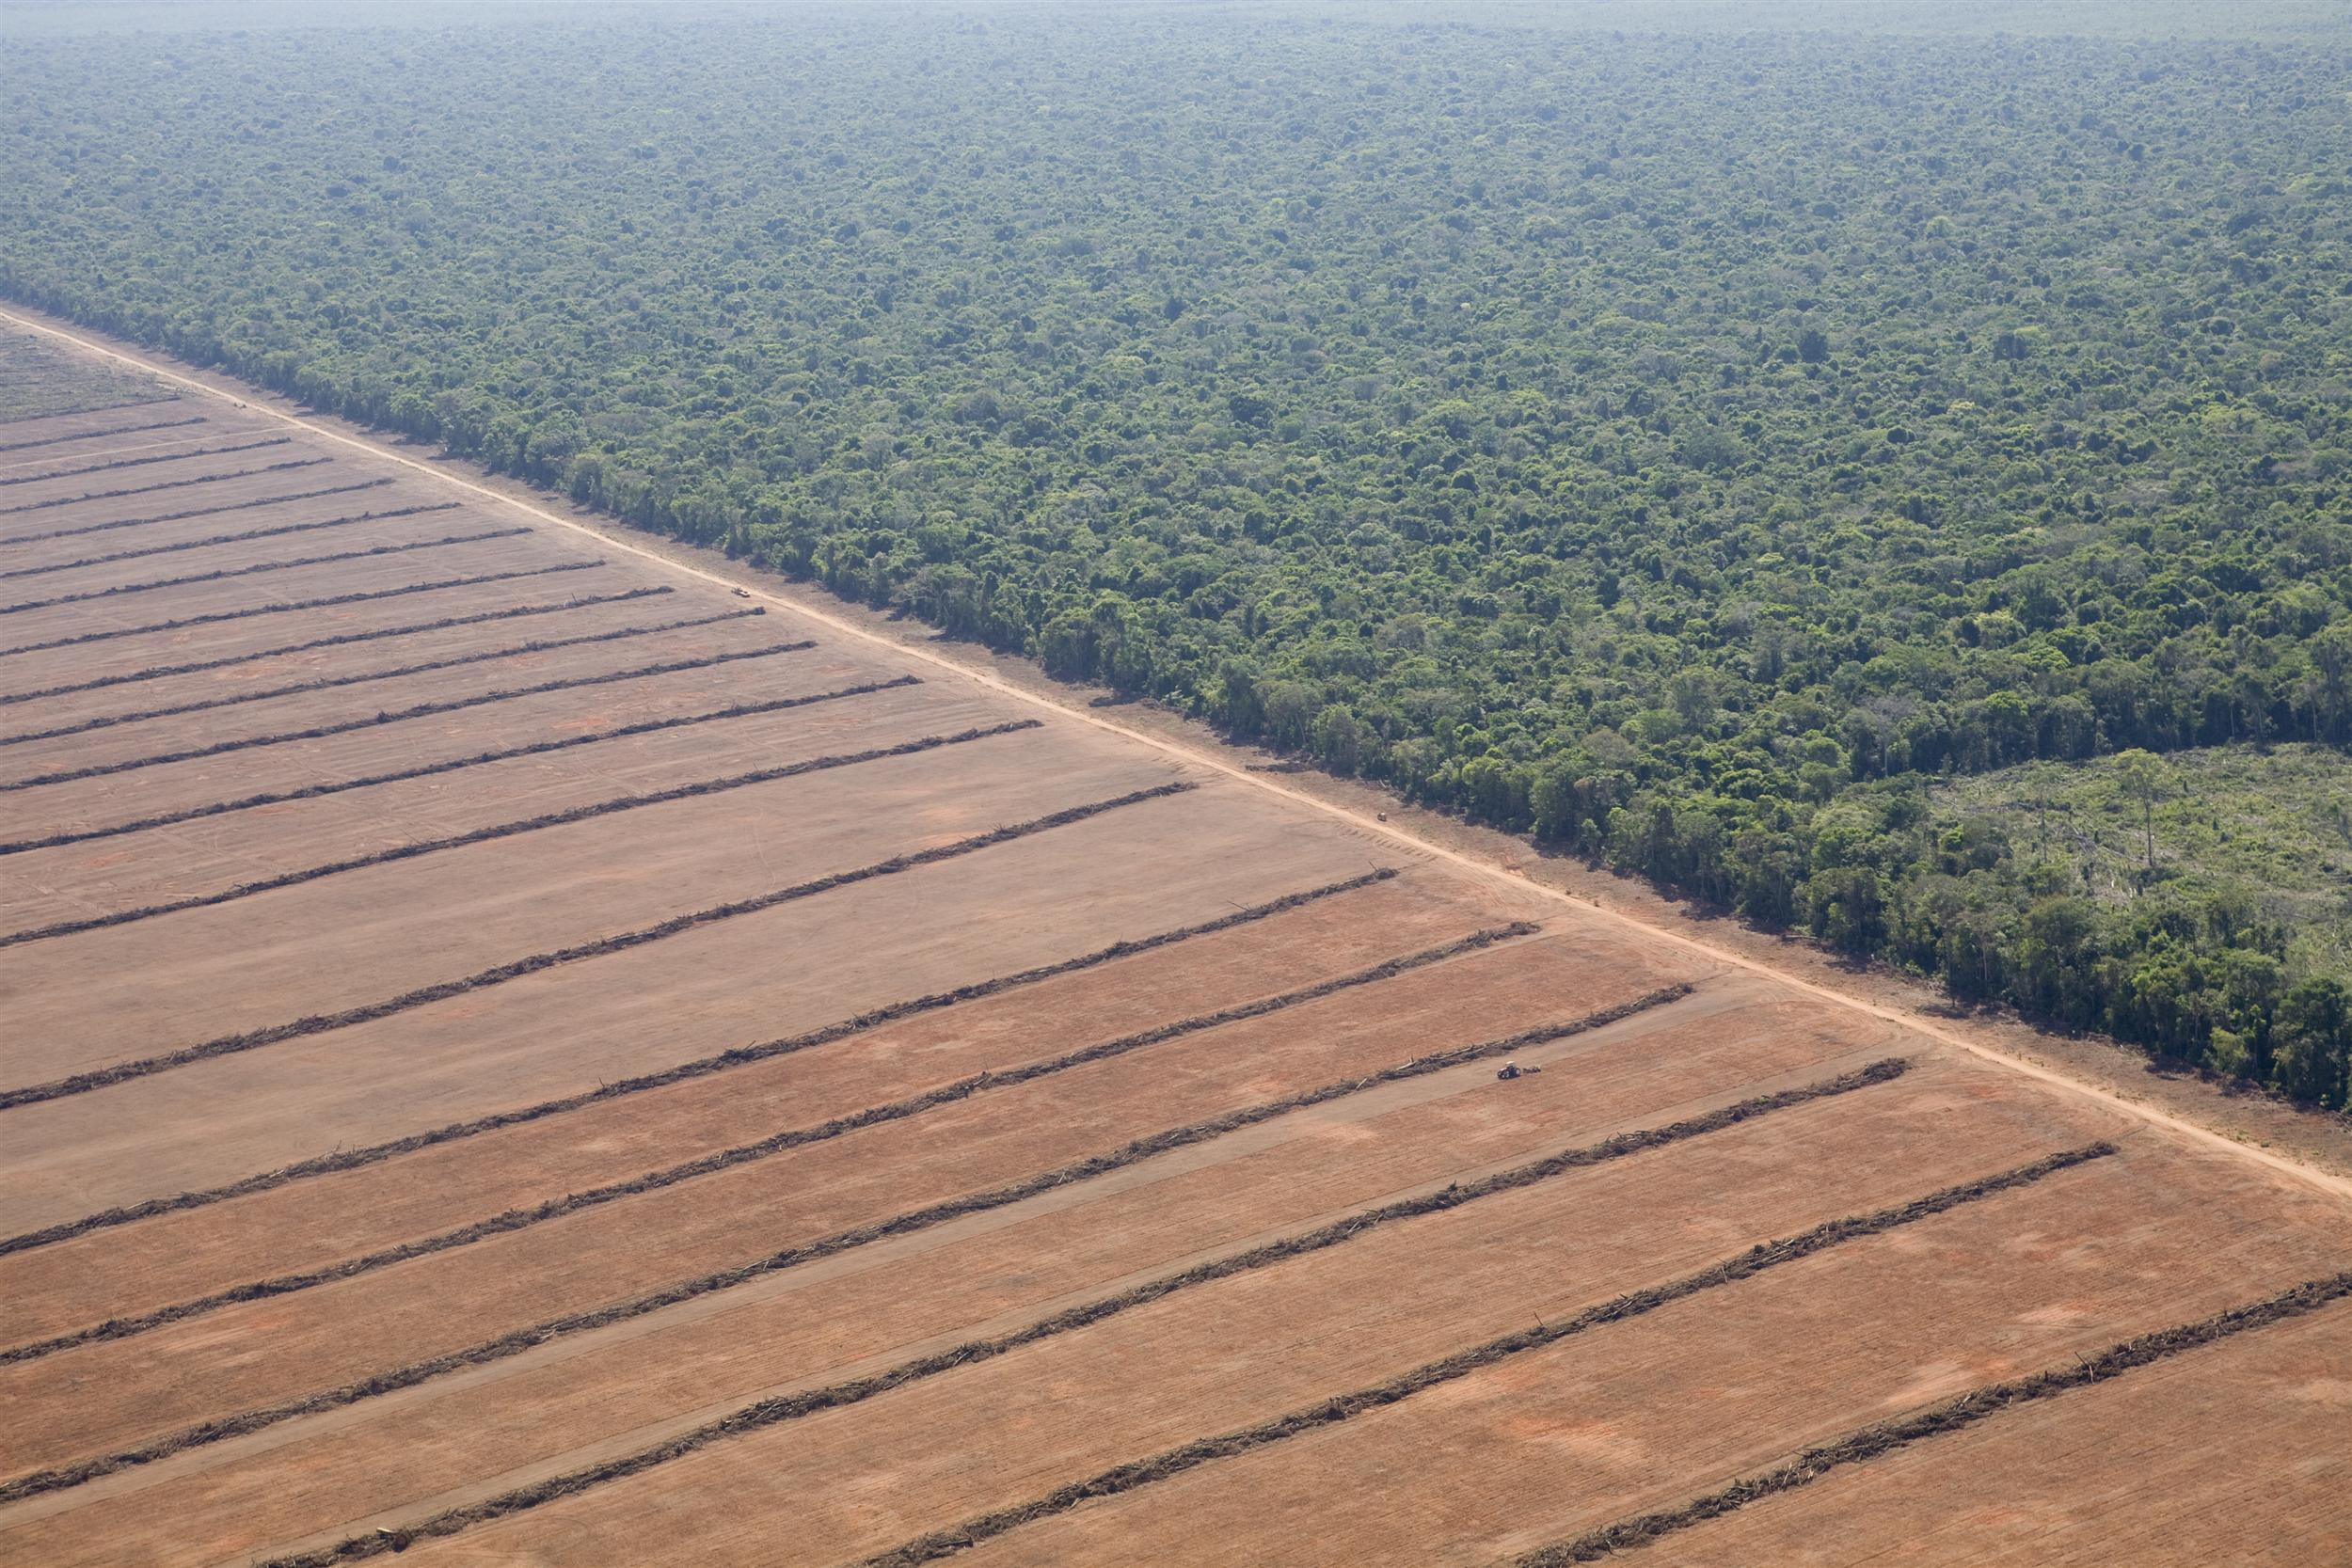 aerial view of farm in Amazon